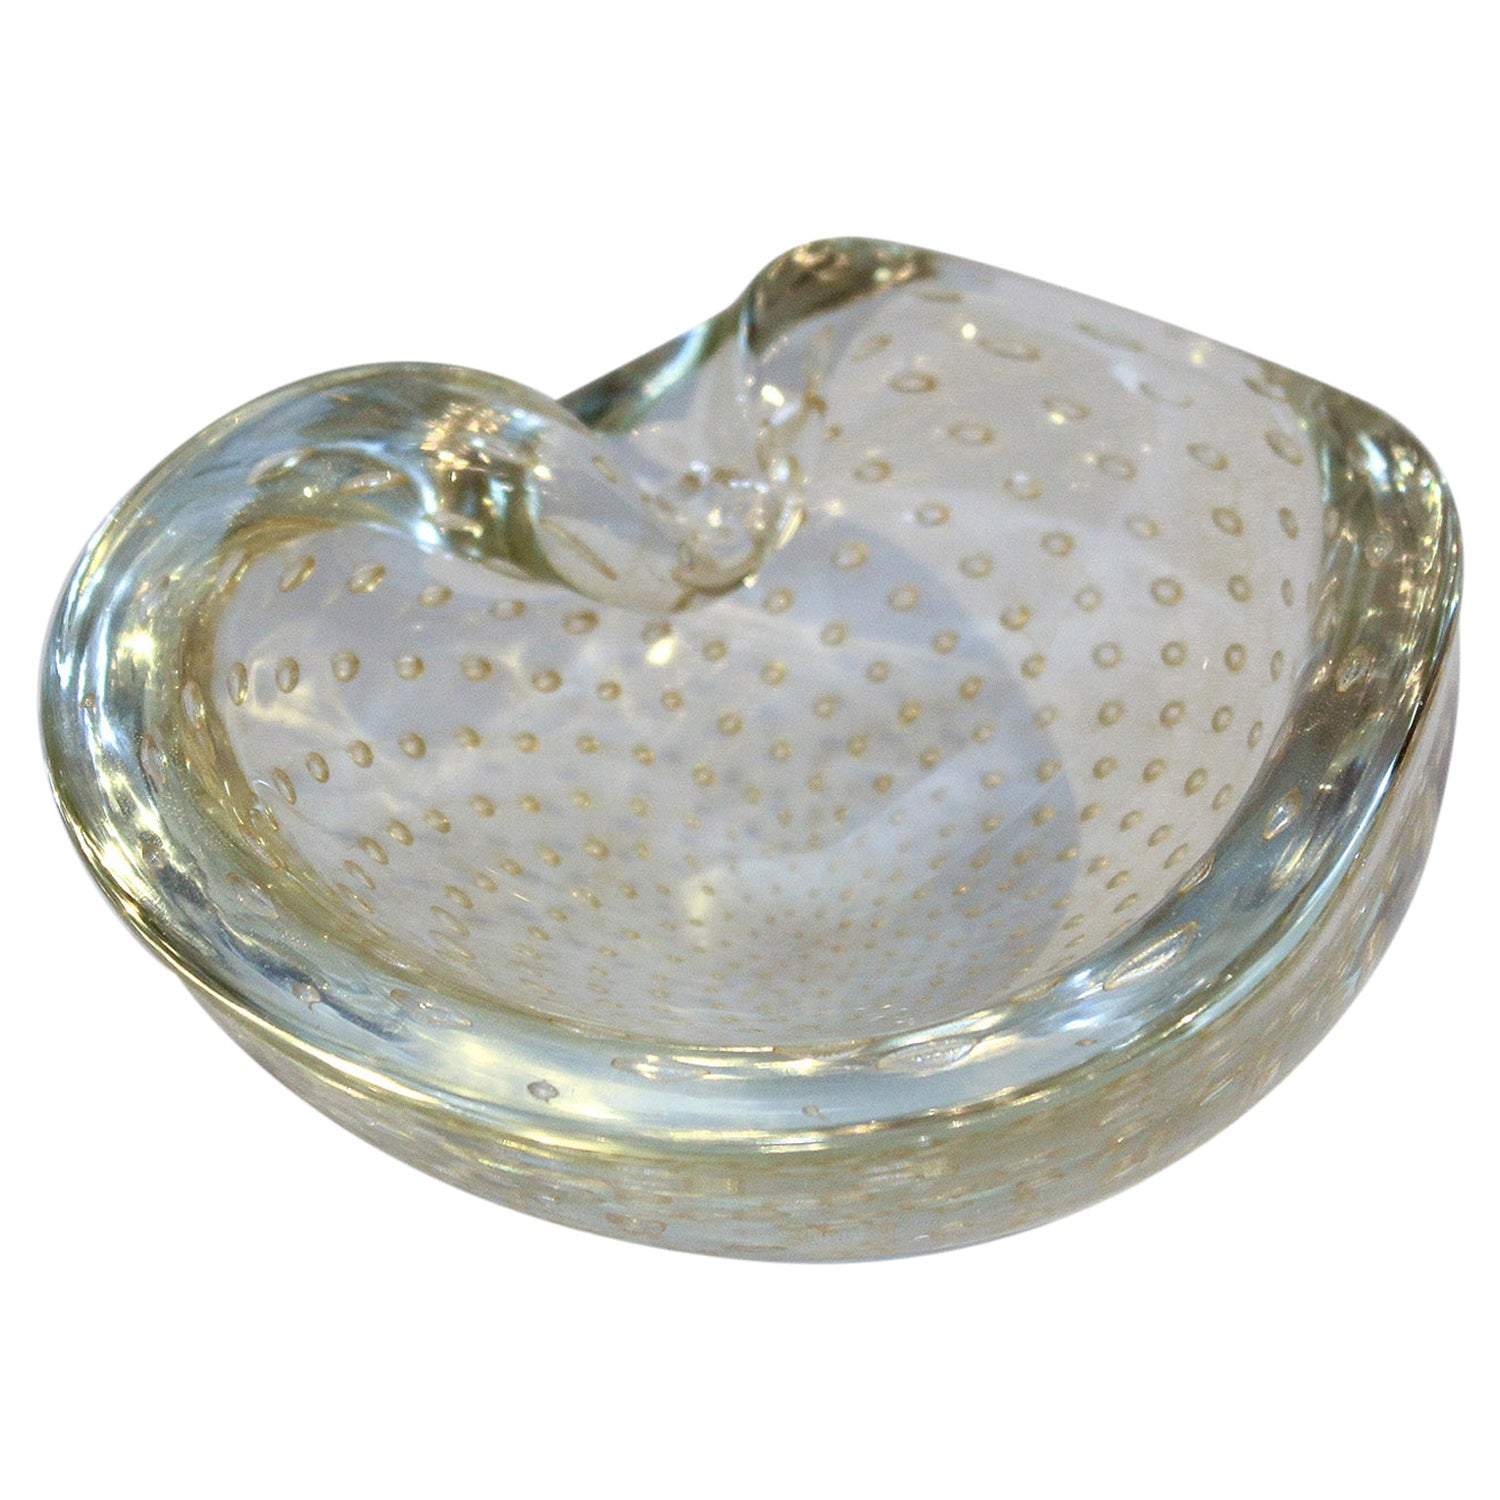 1950s Seguso Murano Glass Gold Dusted Kidney Shaped Bowl with Controlled Bubbles